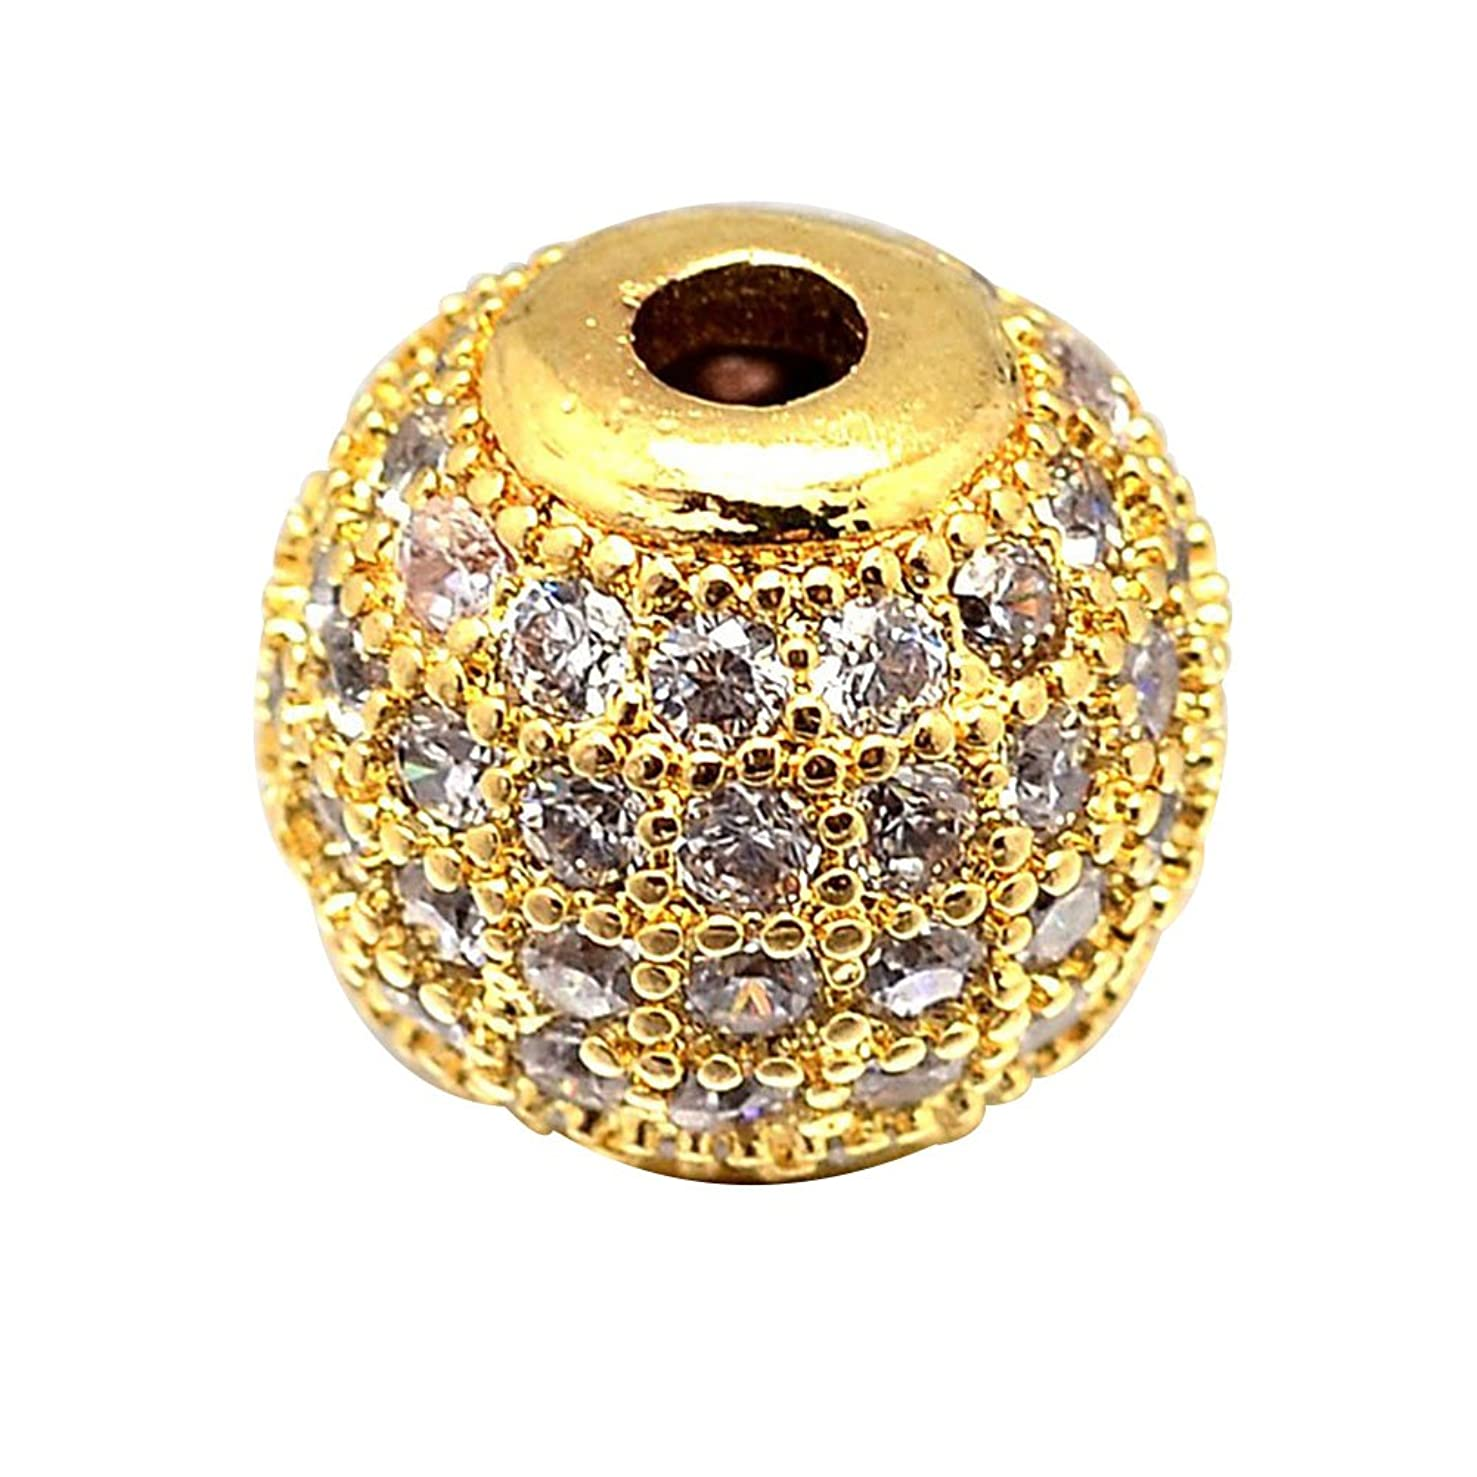 NBEADS 10PCS 8mm Brass Micro Pave Cubic Zirconia Real Gold Round Beads Clear Gemstones Cubic Zirconia Round Beads Bracelet Connector Charms Beads for Jewelry Making